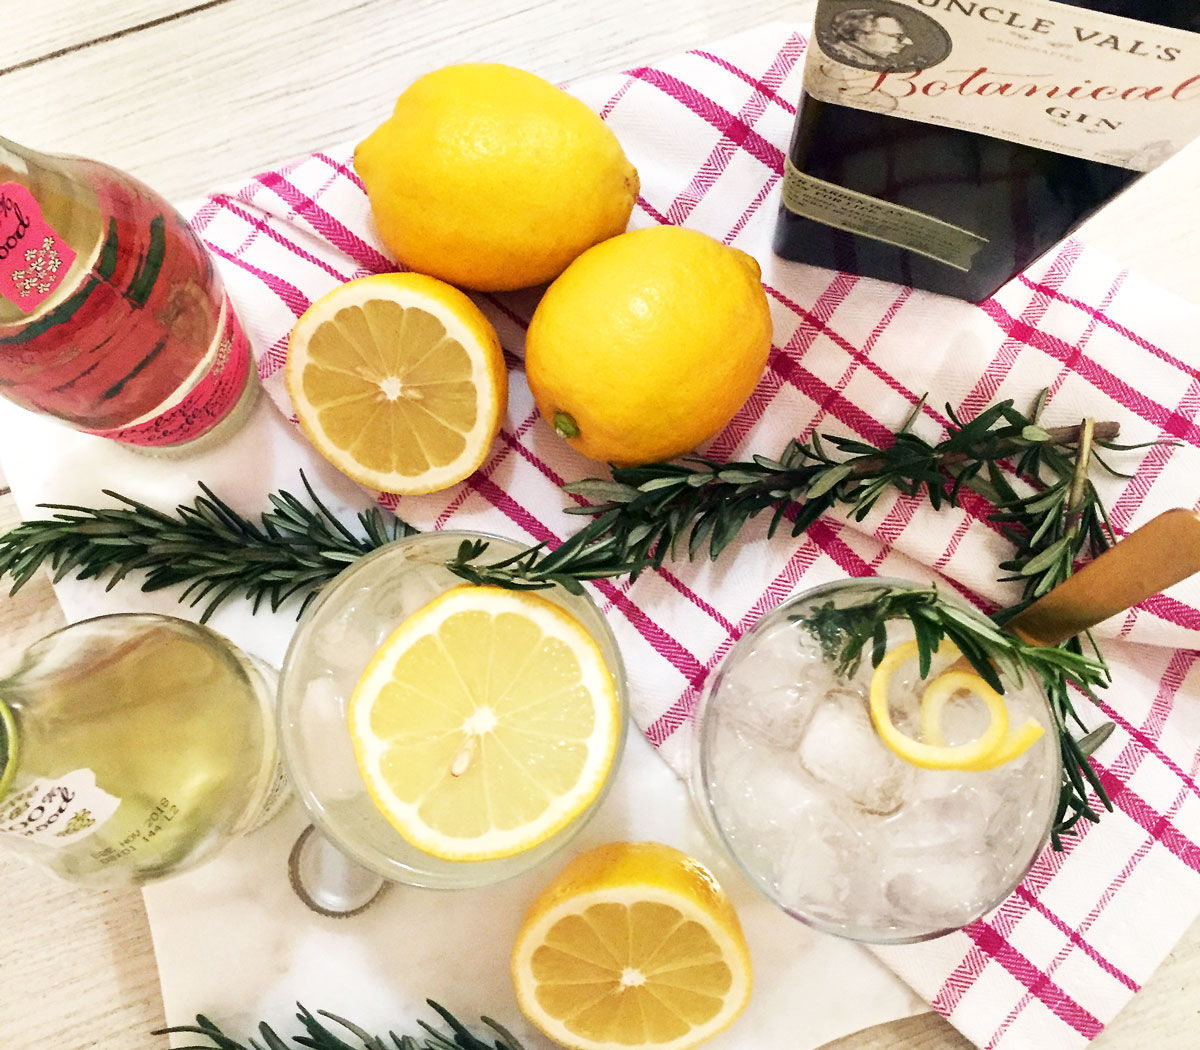 Uncle-Vals-Botanical-Gin-Spring-Cocktail-Recipe-By-Bumble-and-Bustle-Flatlay